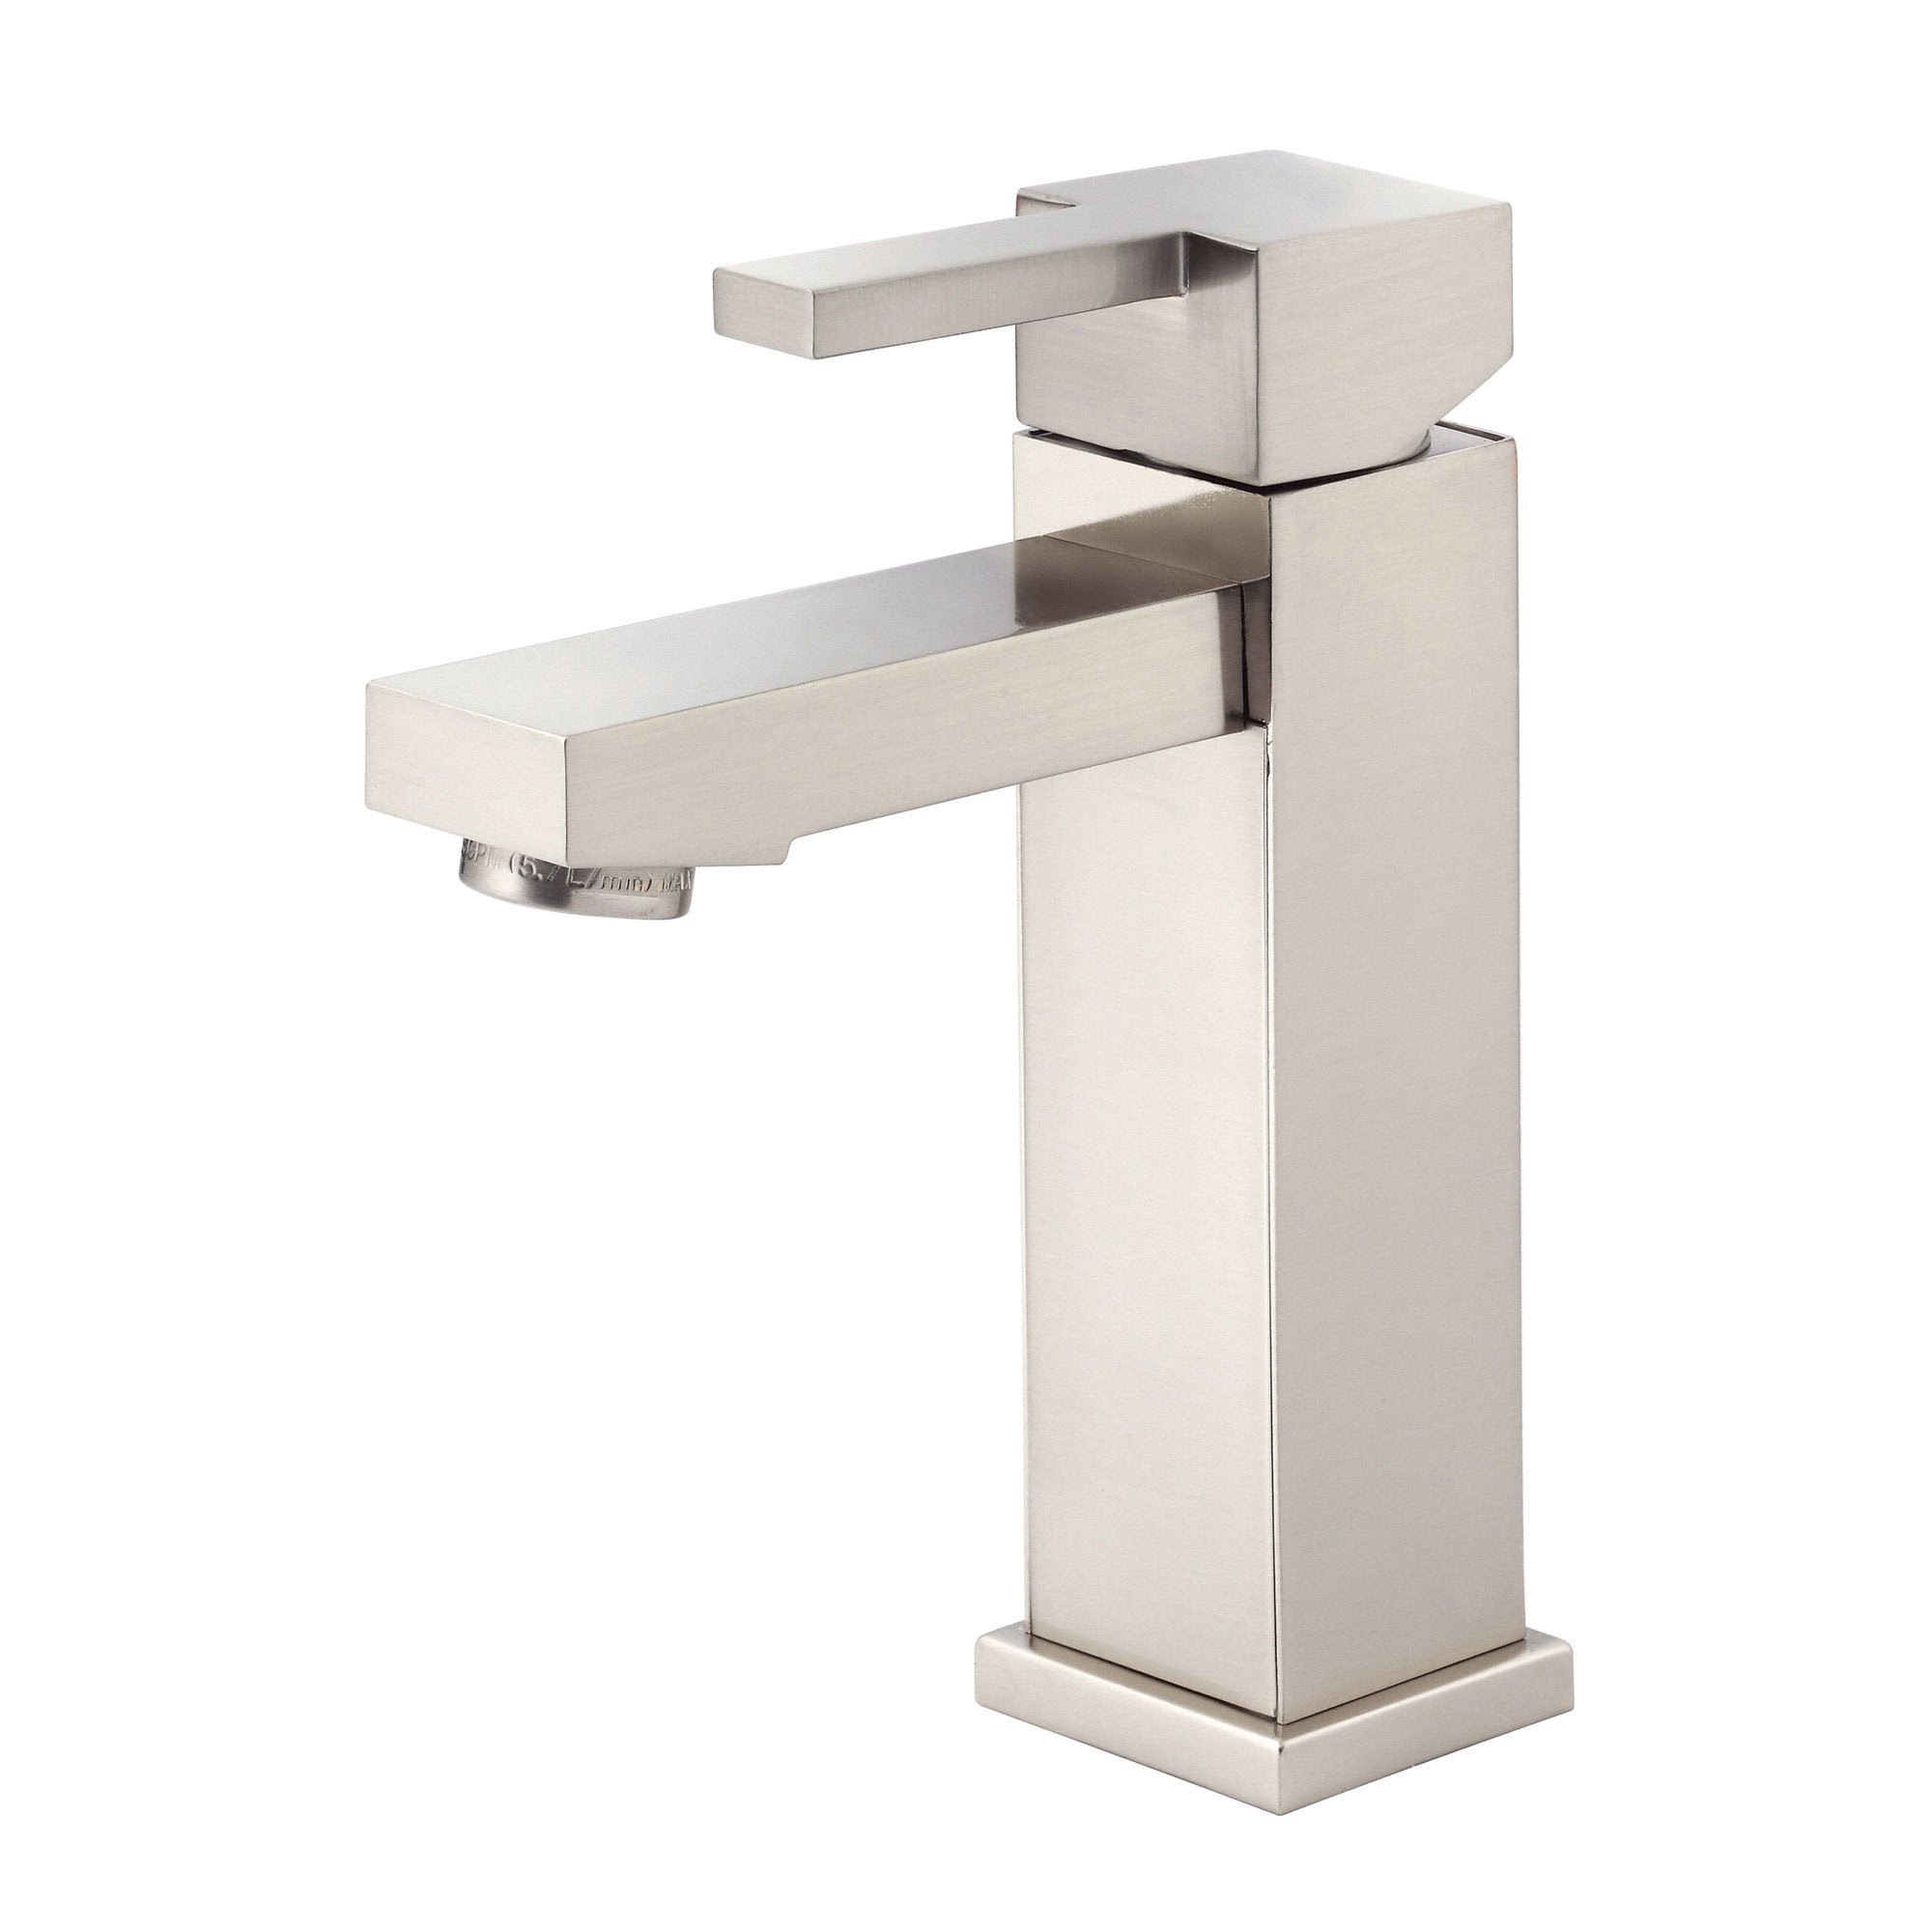 Danze Reef Brushed Nickel Single Handle Bathroom Sink Lavy Faucet w Drain